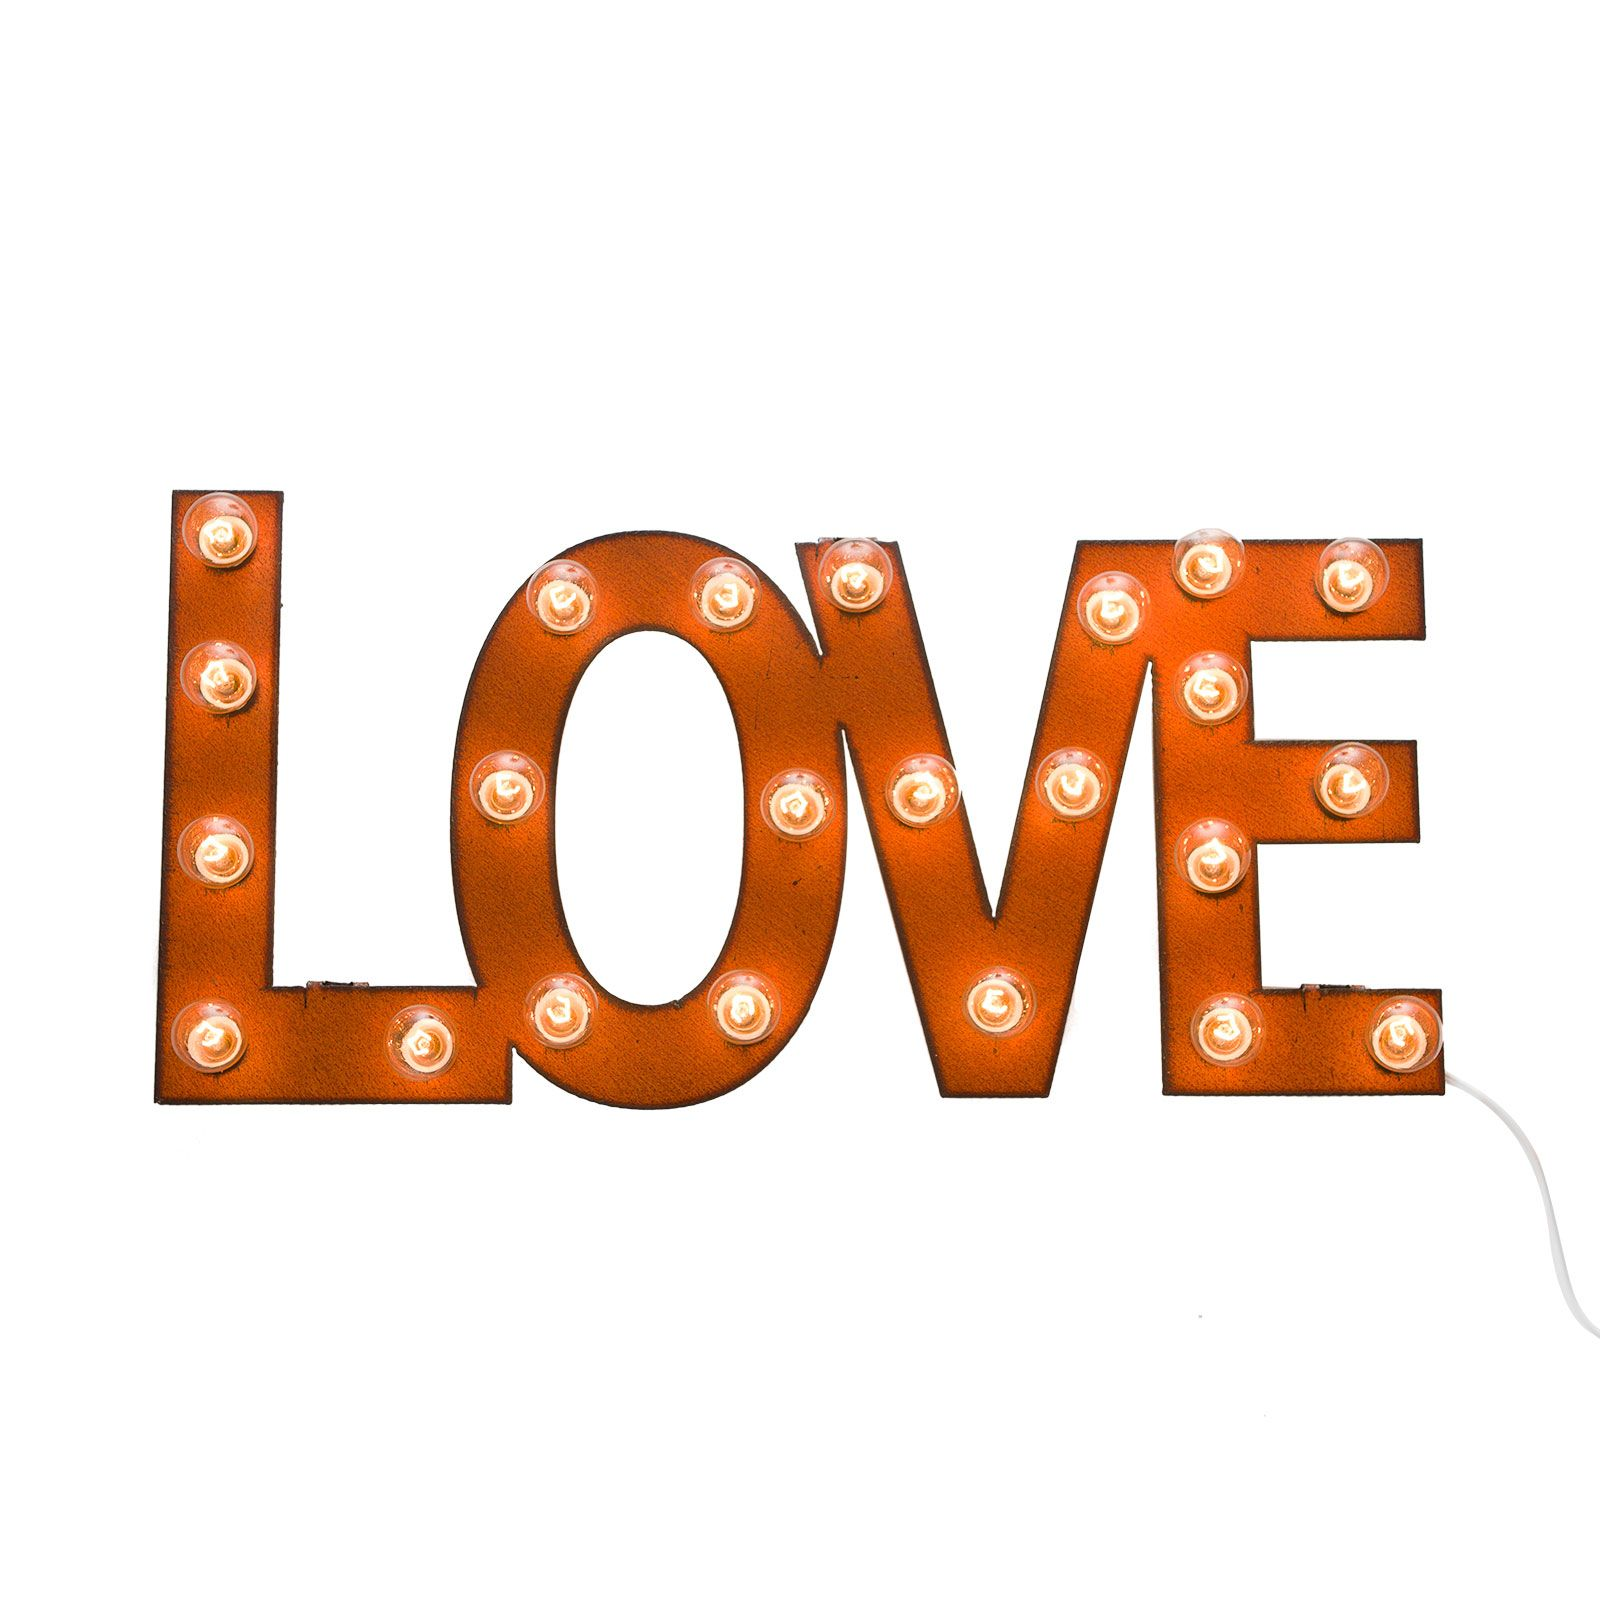 Wedding anniversary decoration ideas at home  All I Need is Love Marquee Sign  dotandbo  For the Home